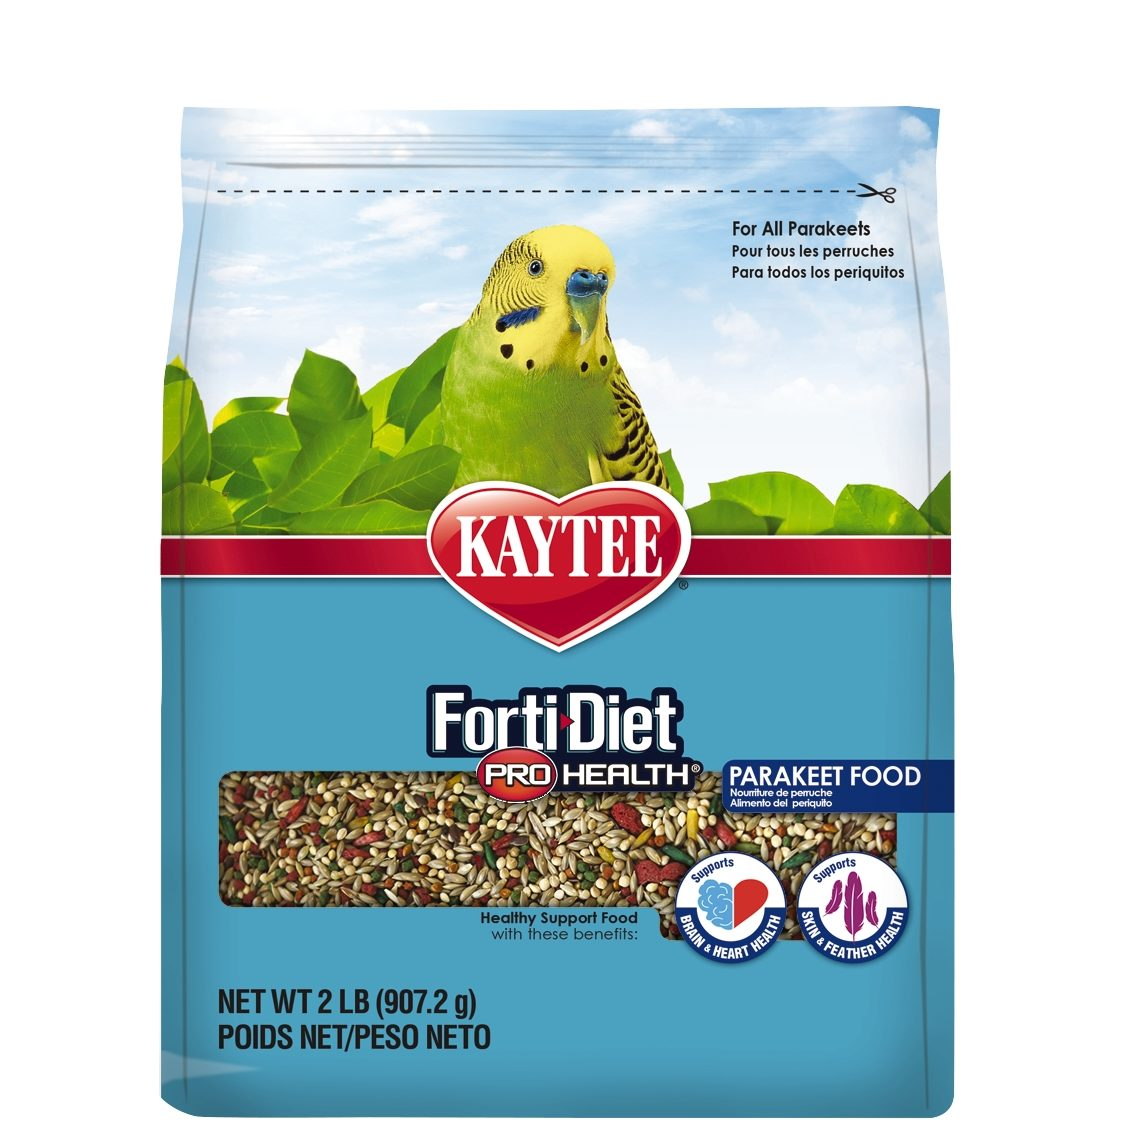 Kaytee Forti Diet Pro Health Parakeet Food